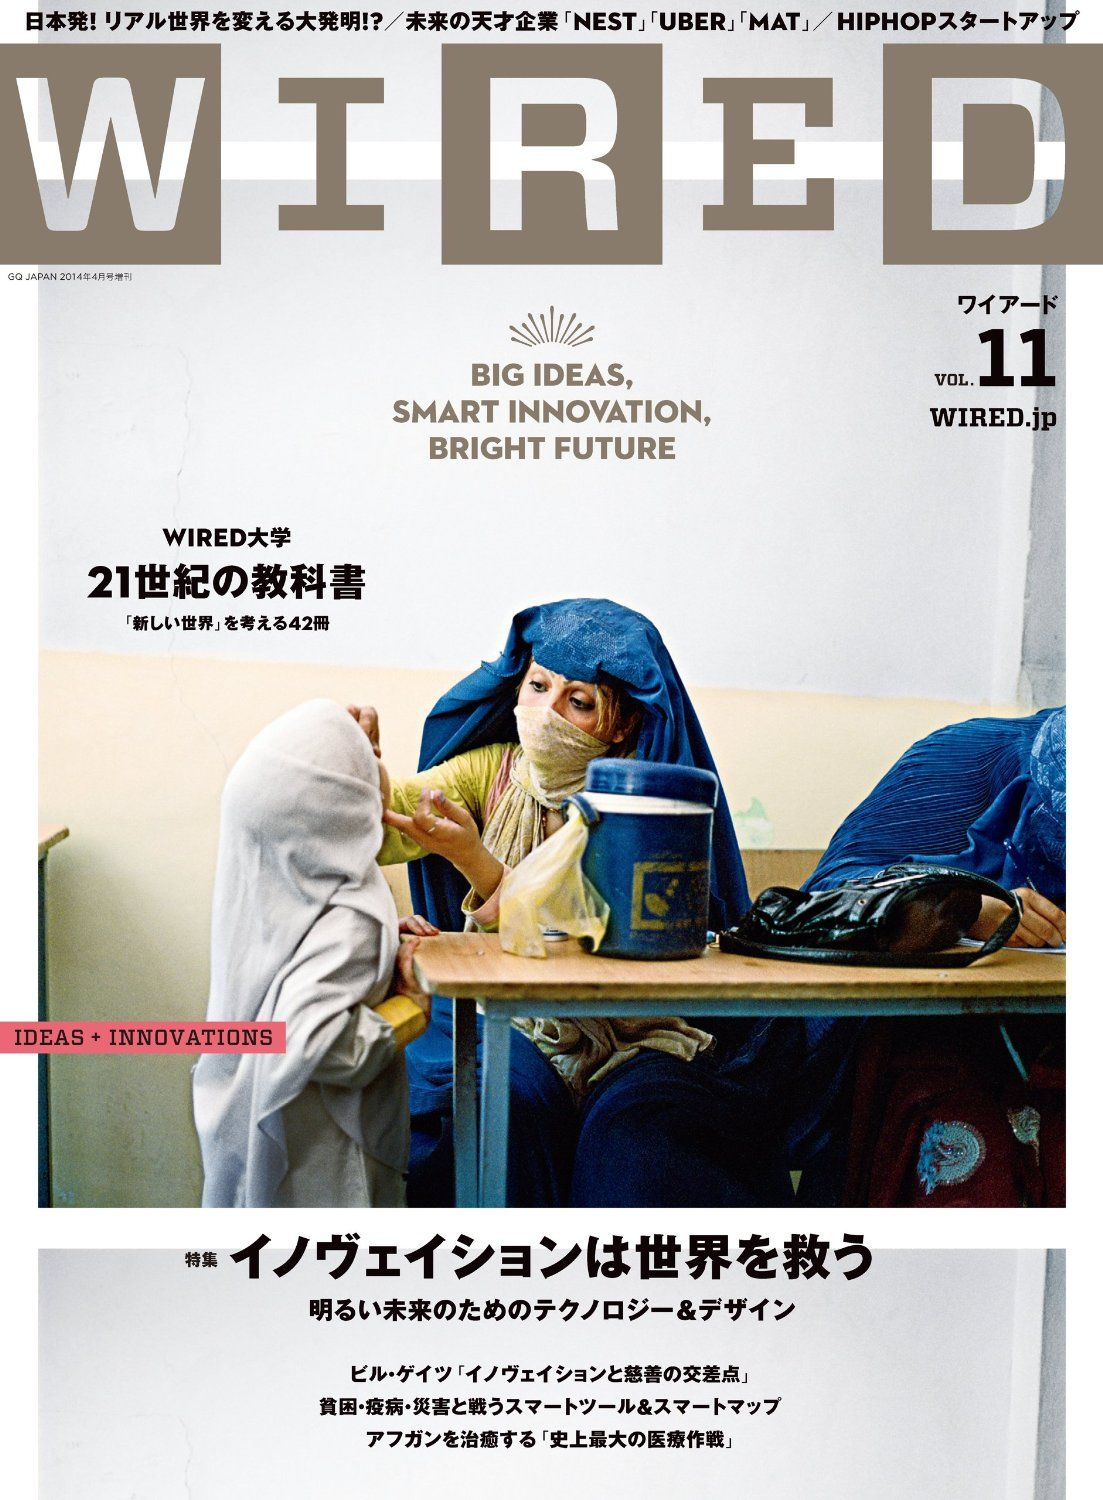 Amazon.co.jp: WIRED(ワイアード)VOL.11 [雑誌] 電子書籍: WIRED編集部 ...